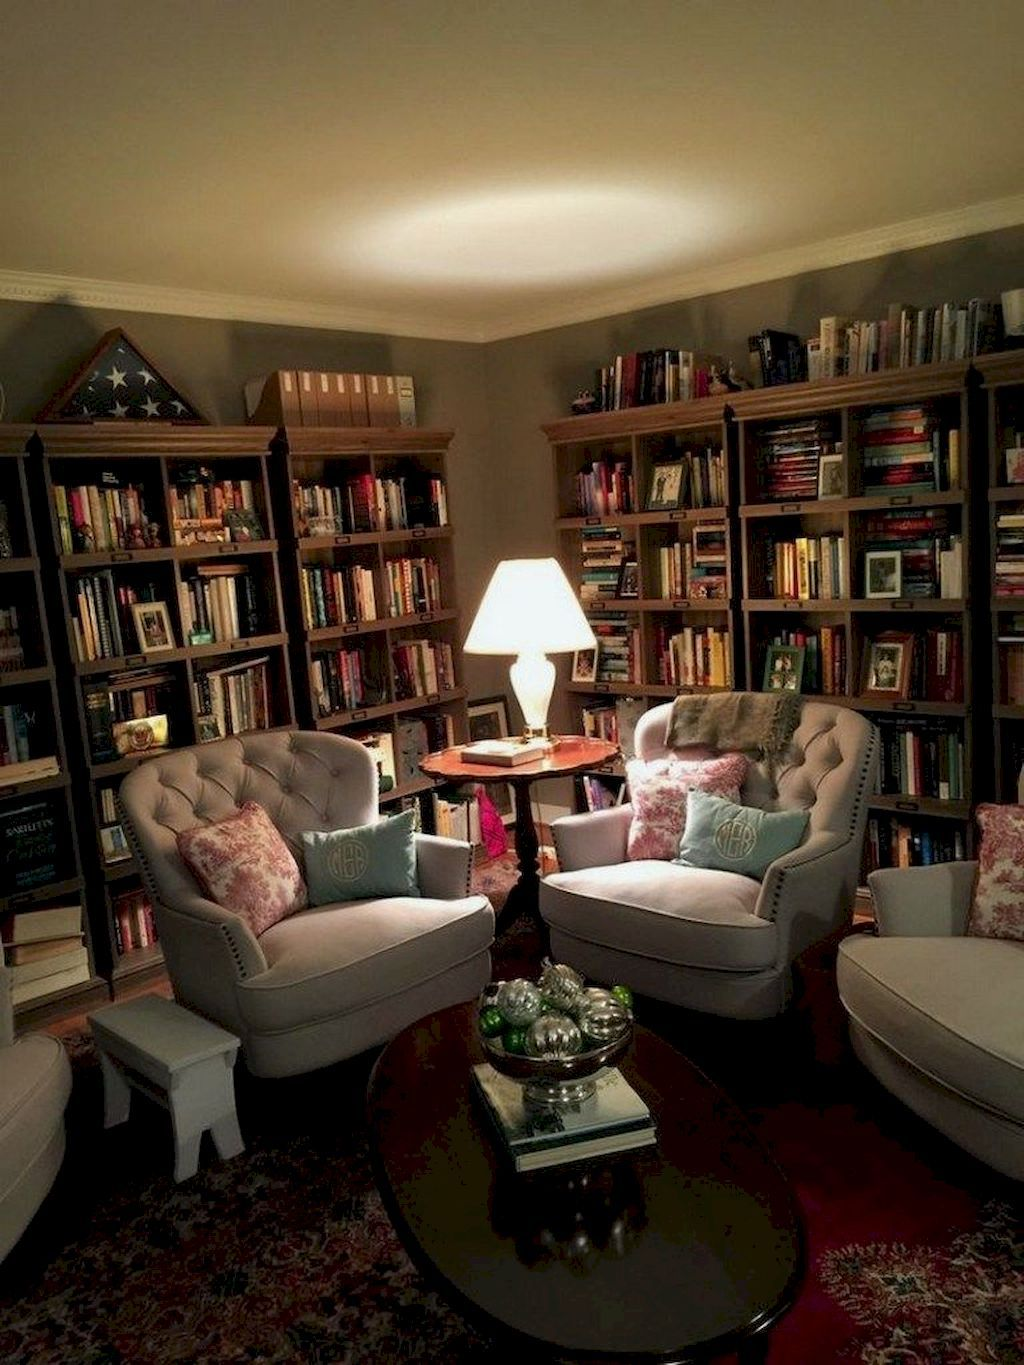 Interior Design Library Room: Dwelling Transforming With A Dwelling Library In 2020